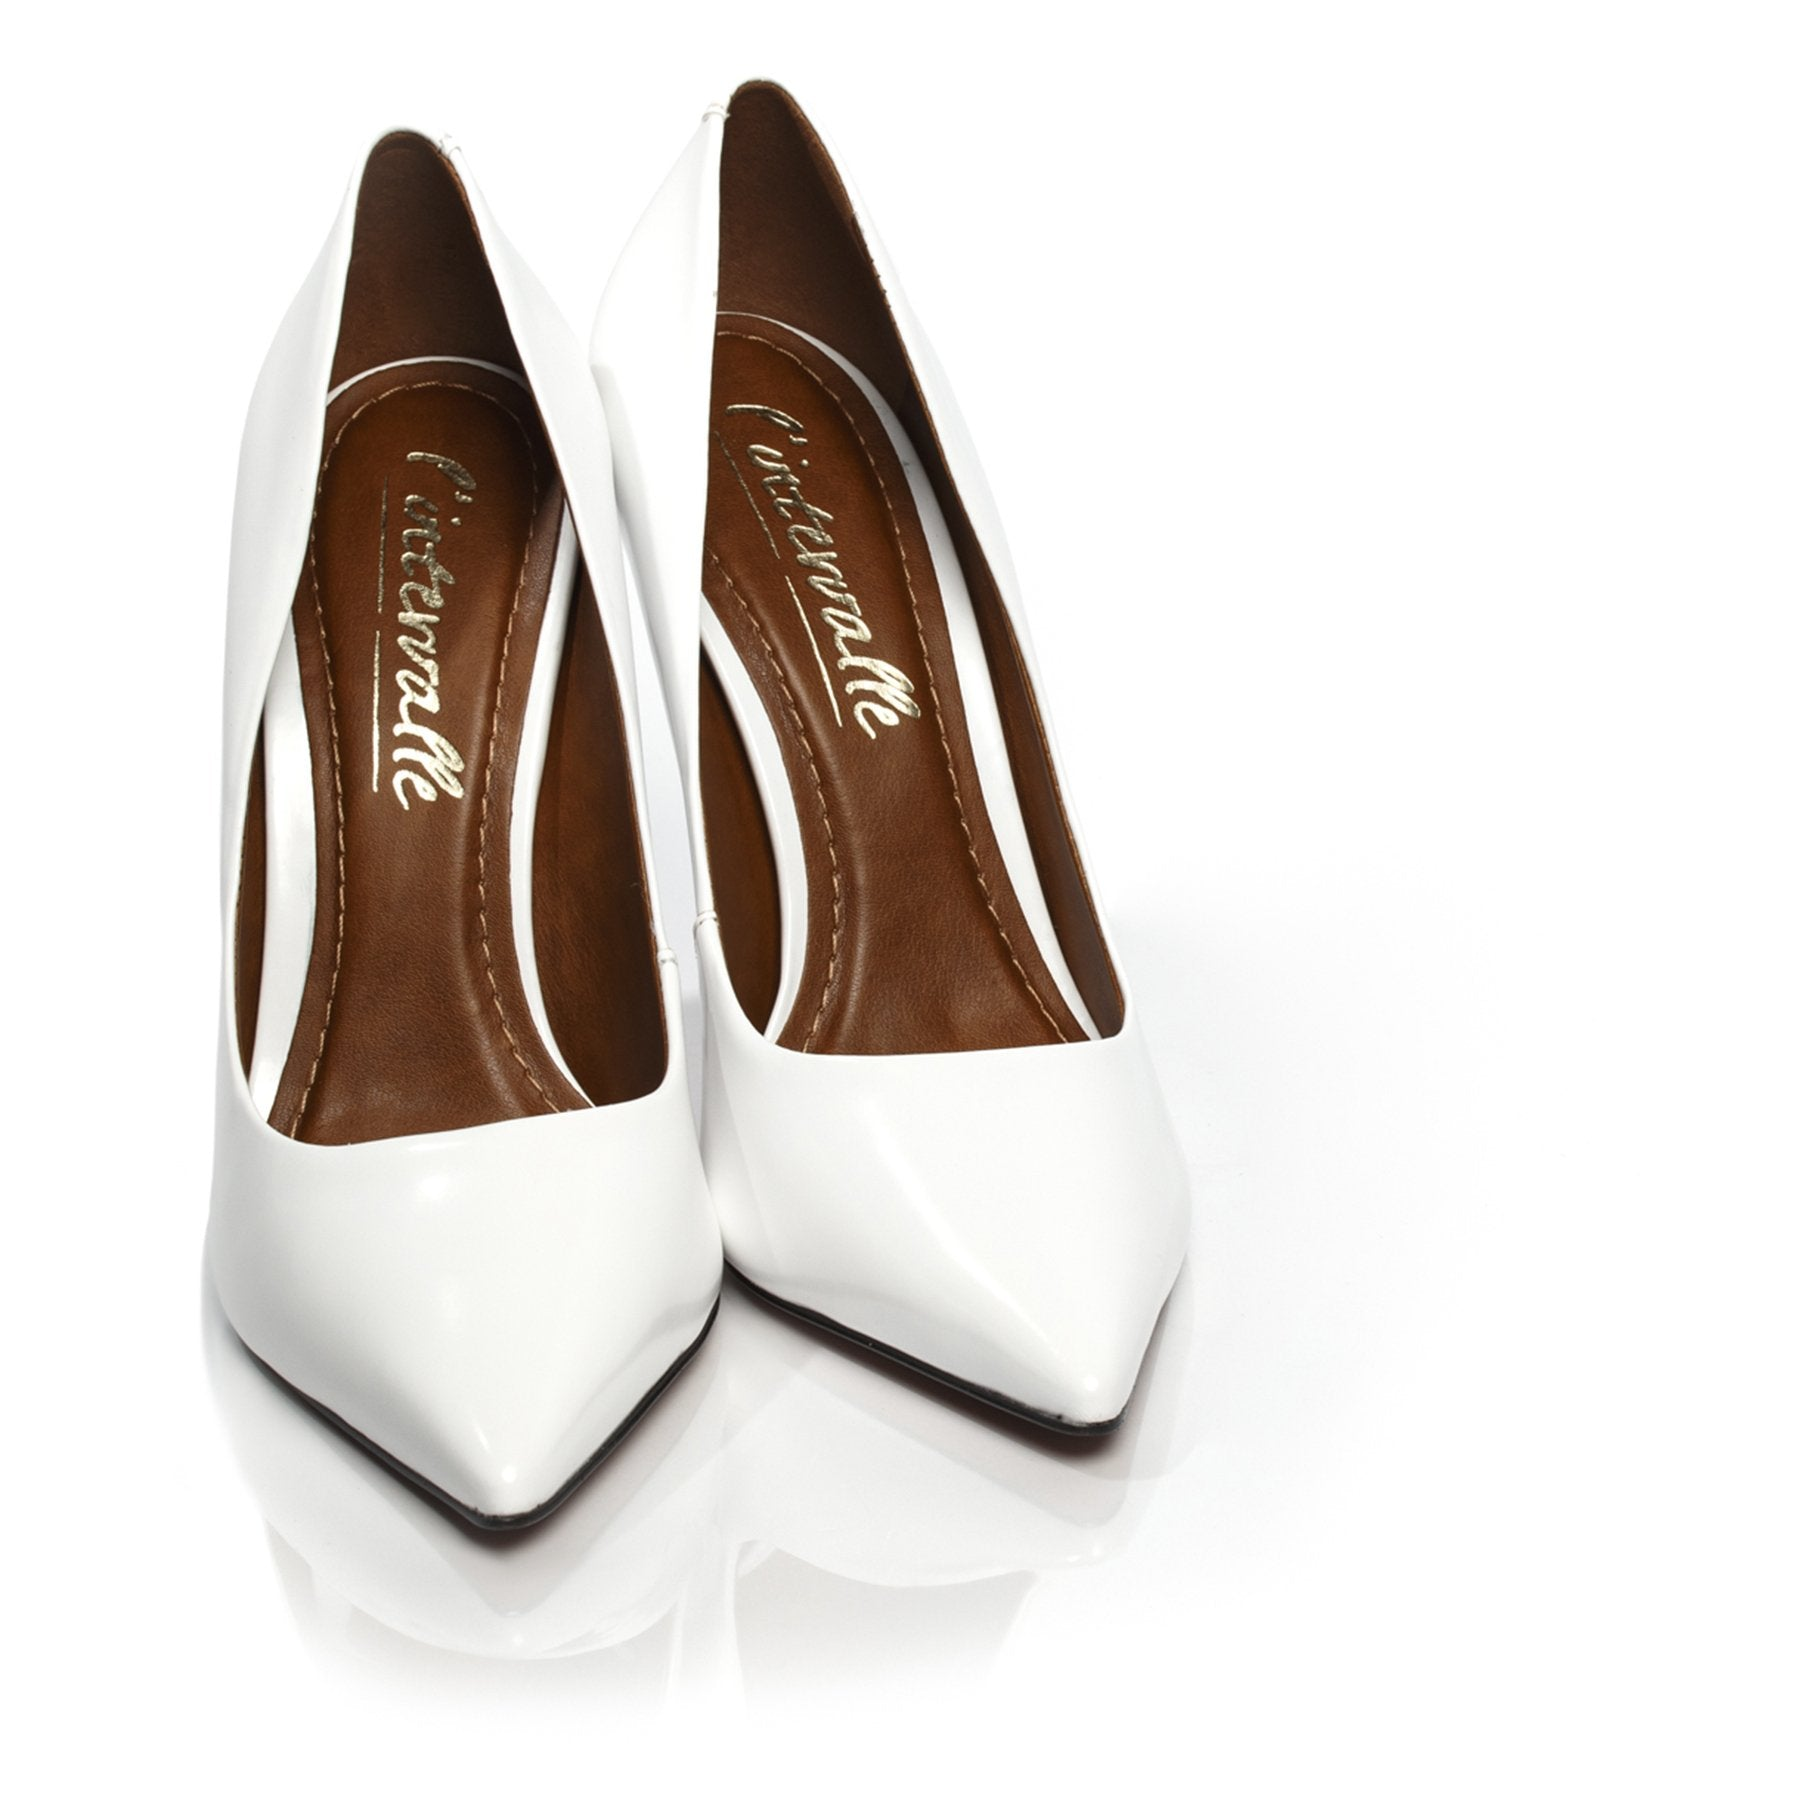 Teeva White Box Pumps